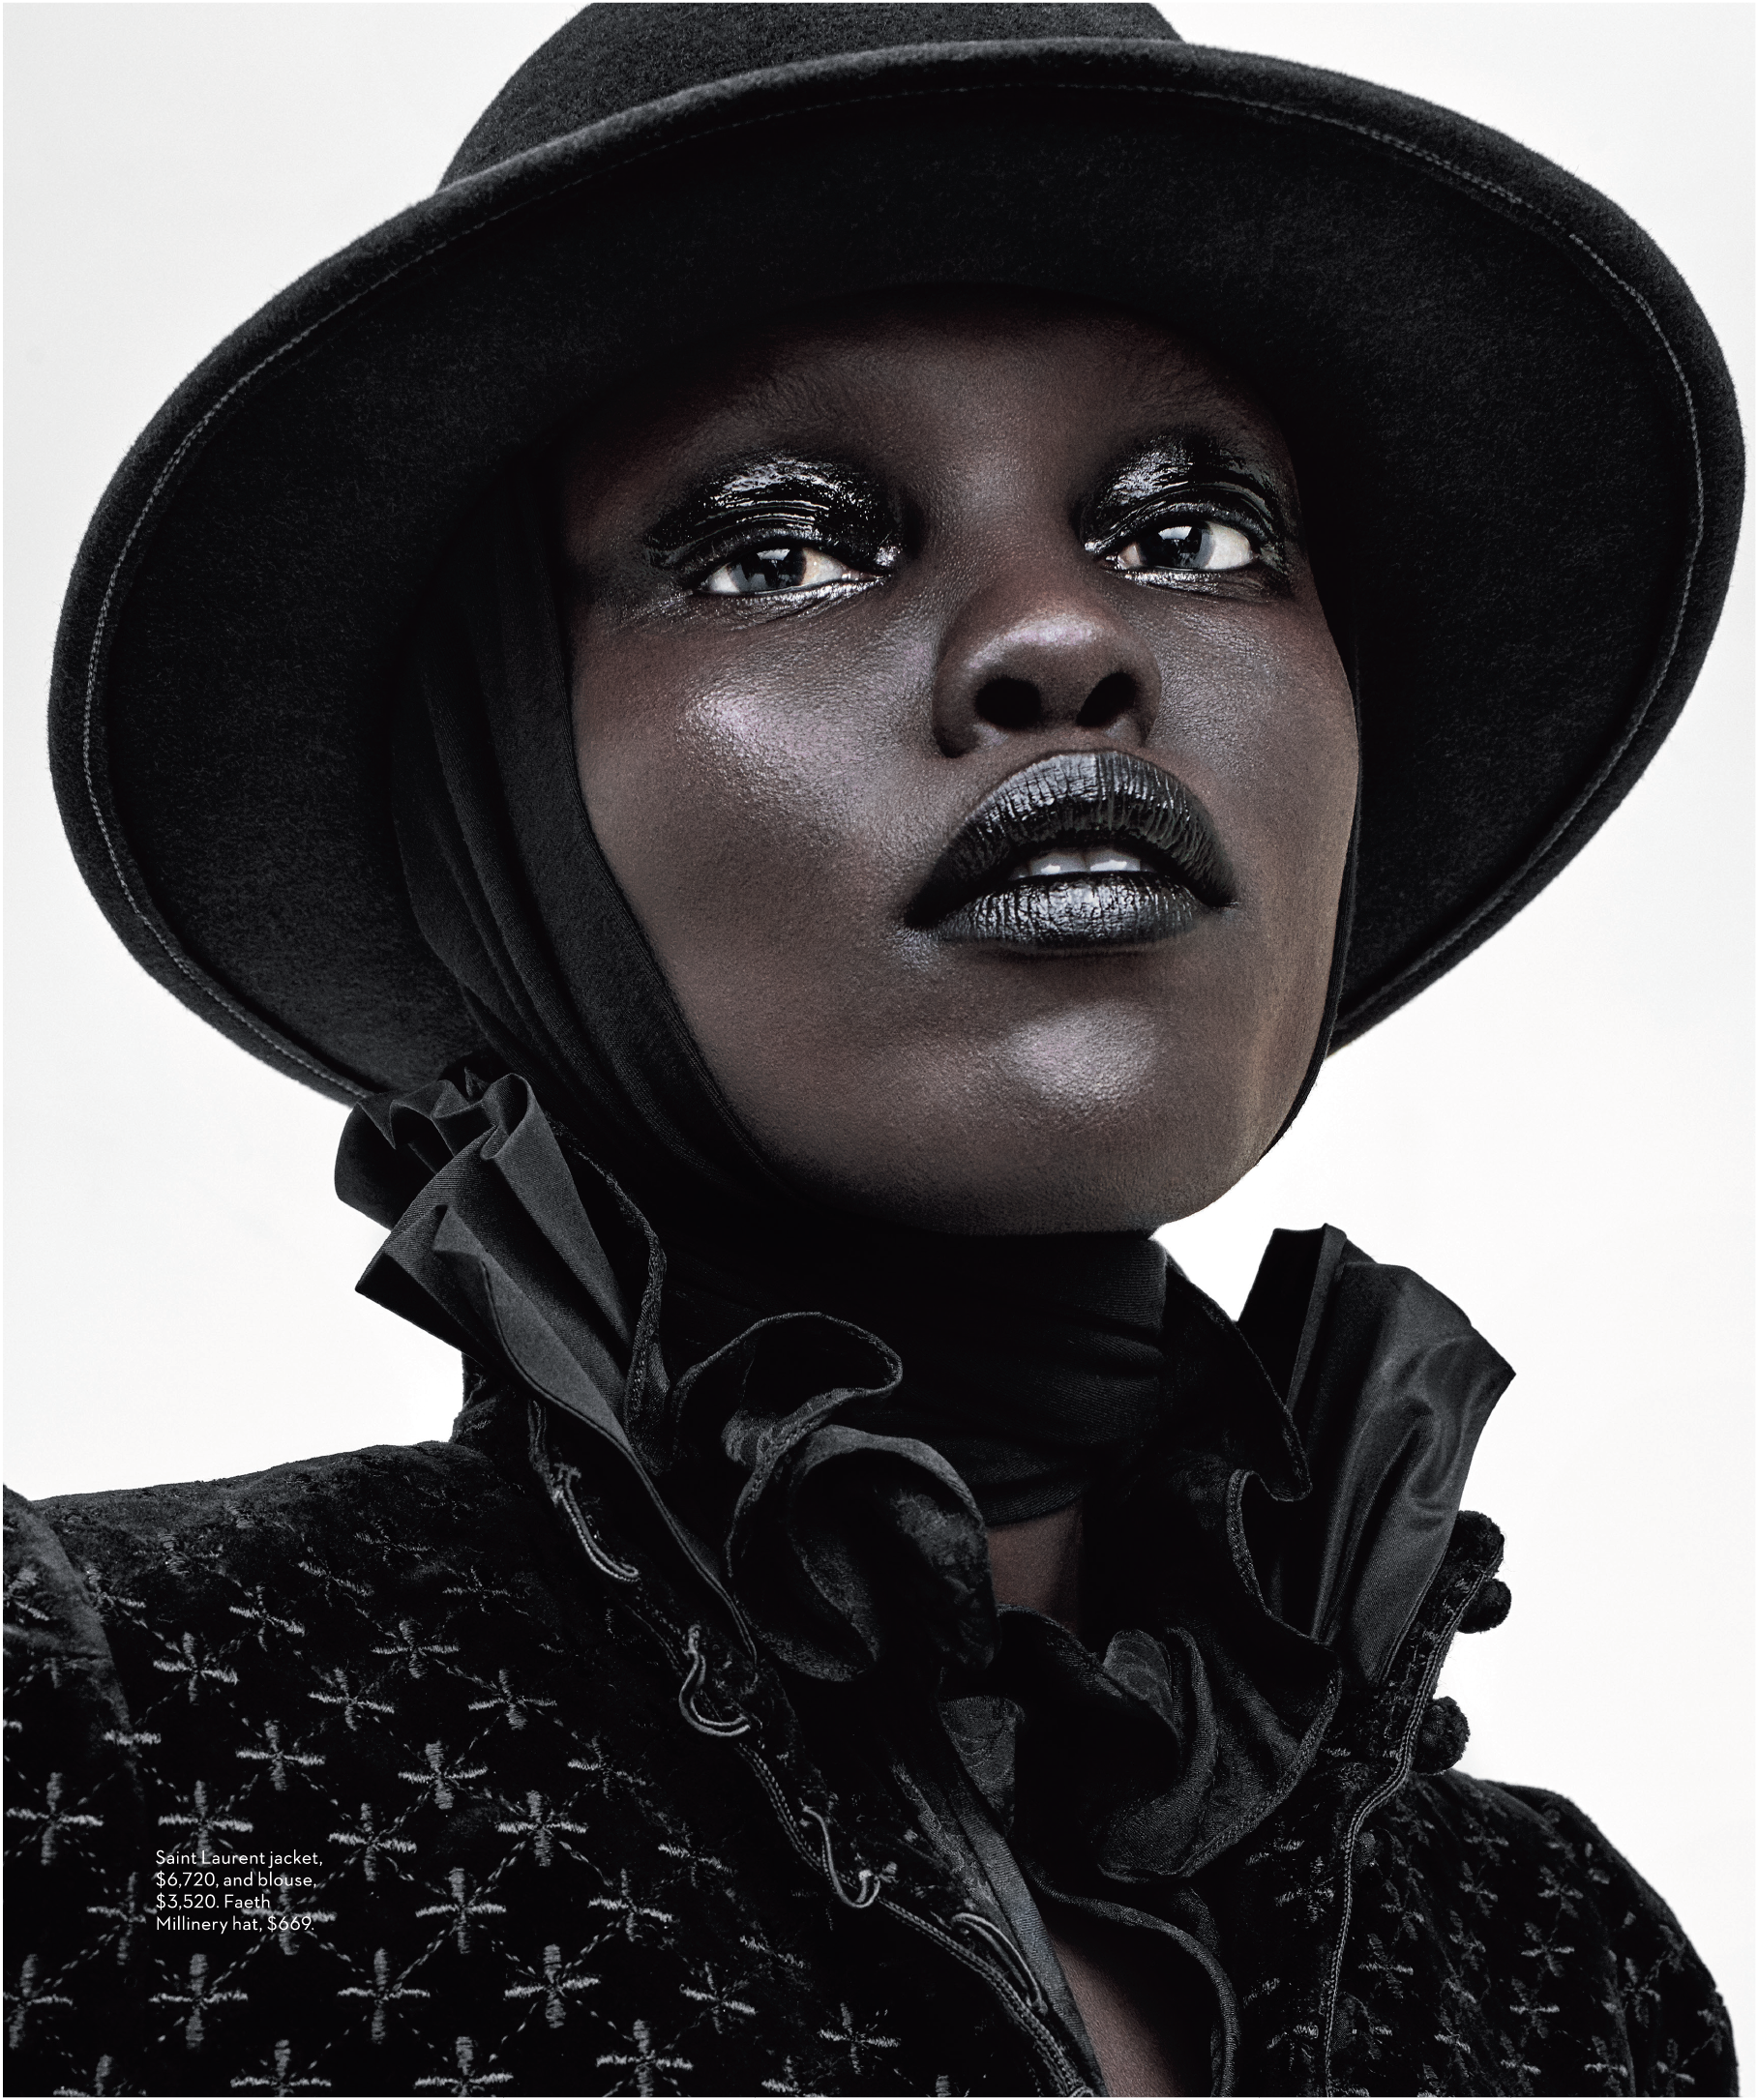 GRACE BOL PHOTOGRAPHED BY JASON KIBBLER FOR AUSTRALIAN VOGUE, SEPTEMBER 2018. IMAGES COURTESY CONDÉ NAST.